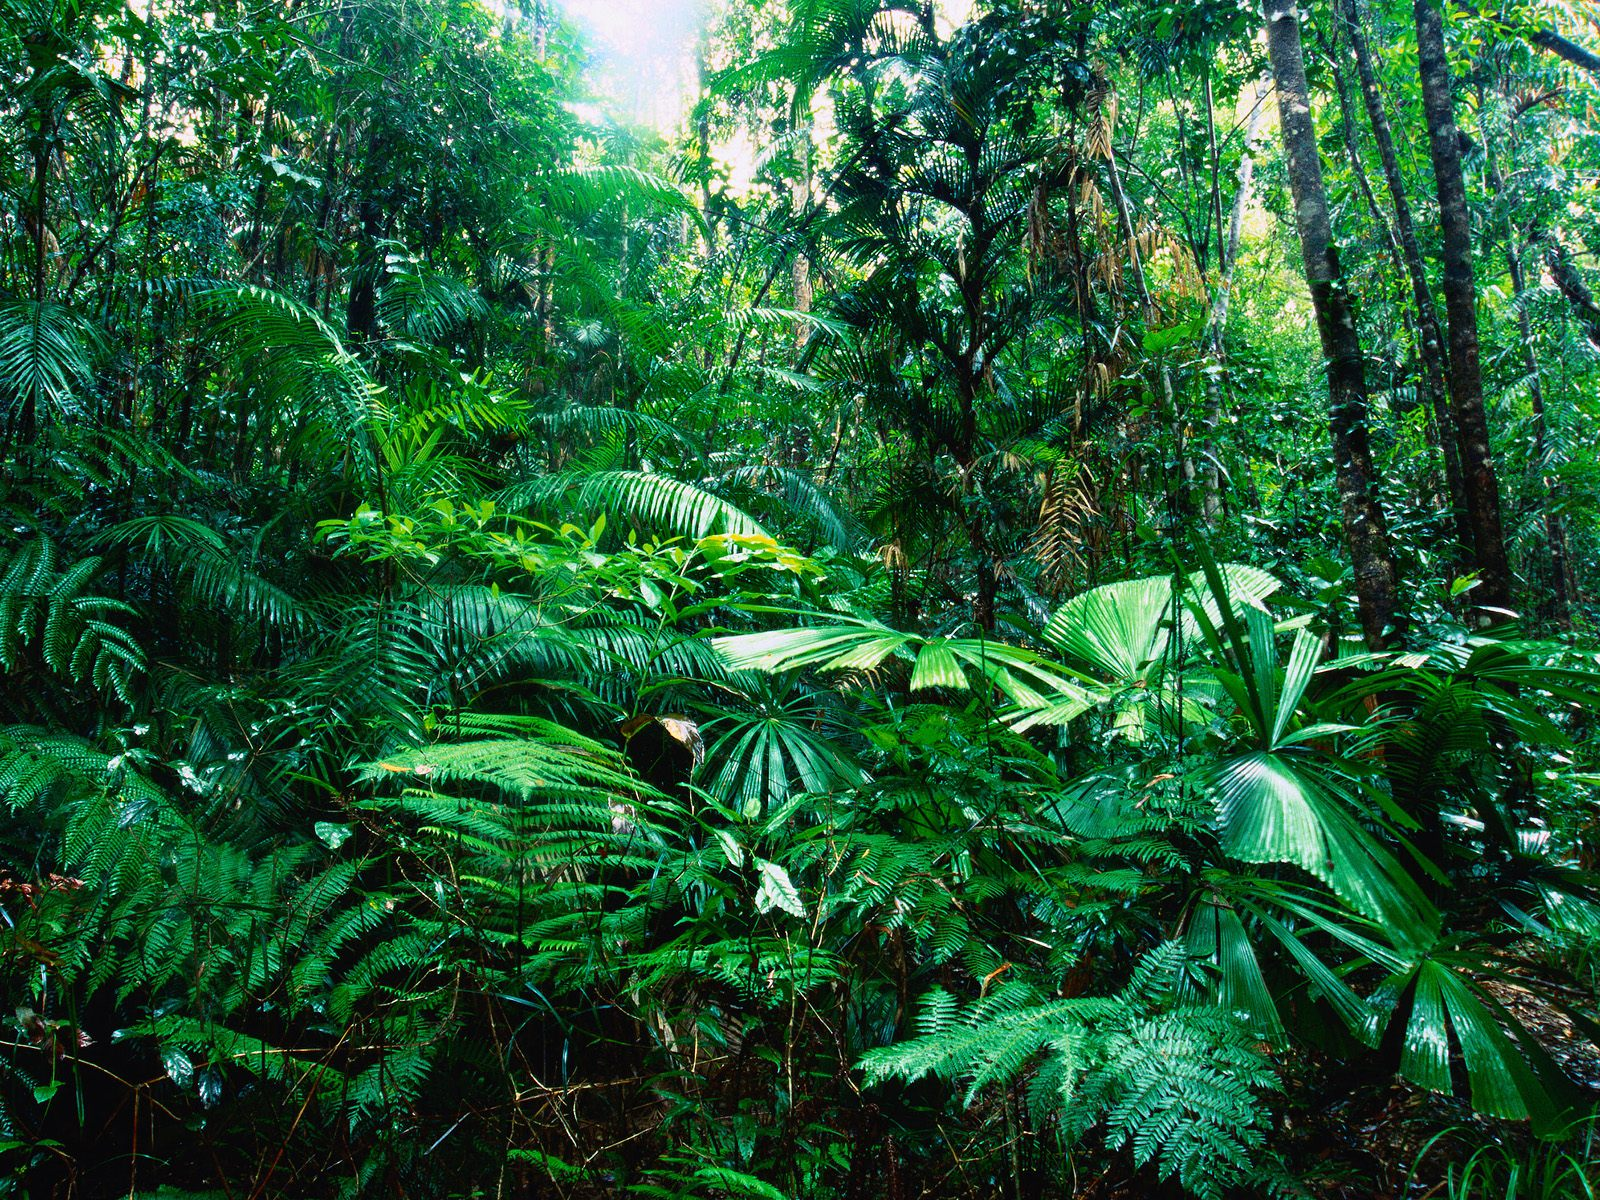 6 5 13 tropicalism and national recociliation abc for Australian rainforest